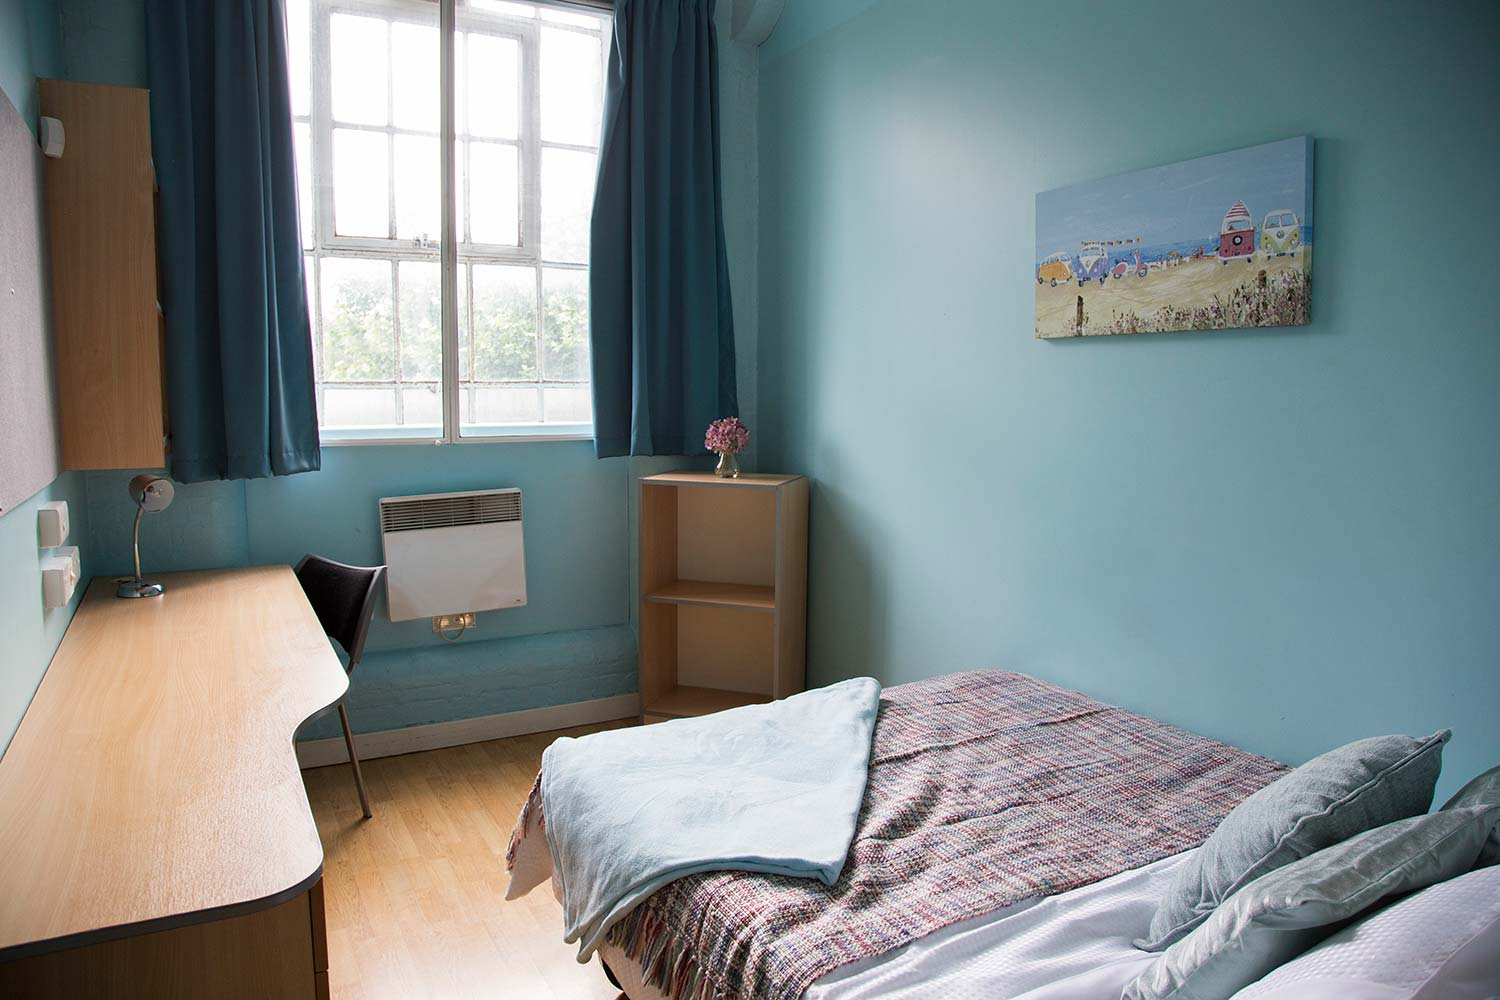 student accommodation near university of nottingham